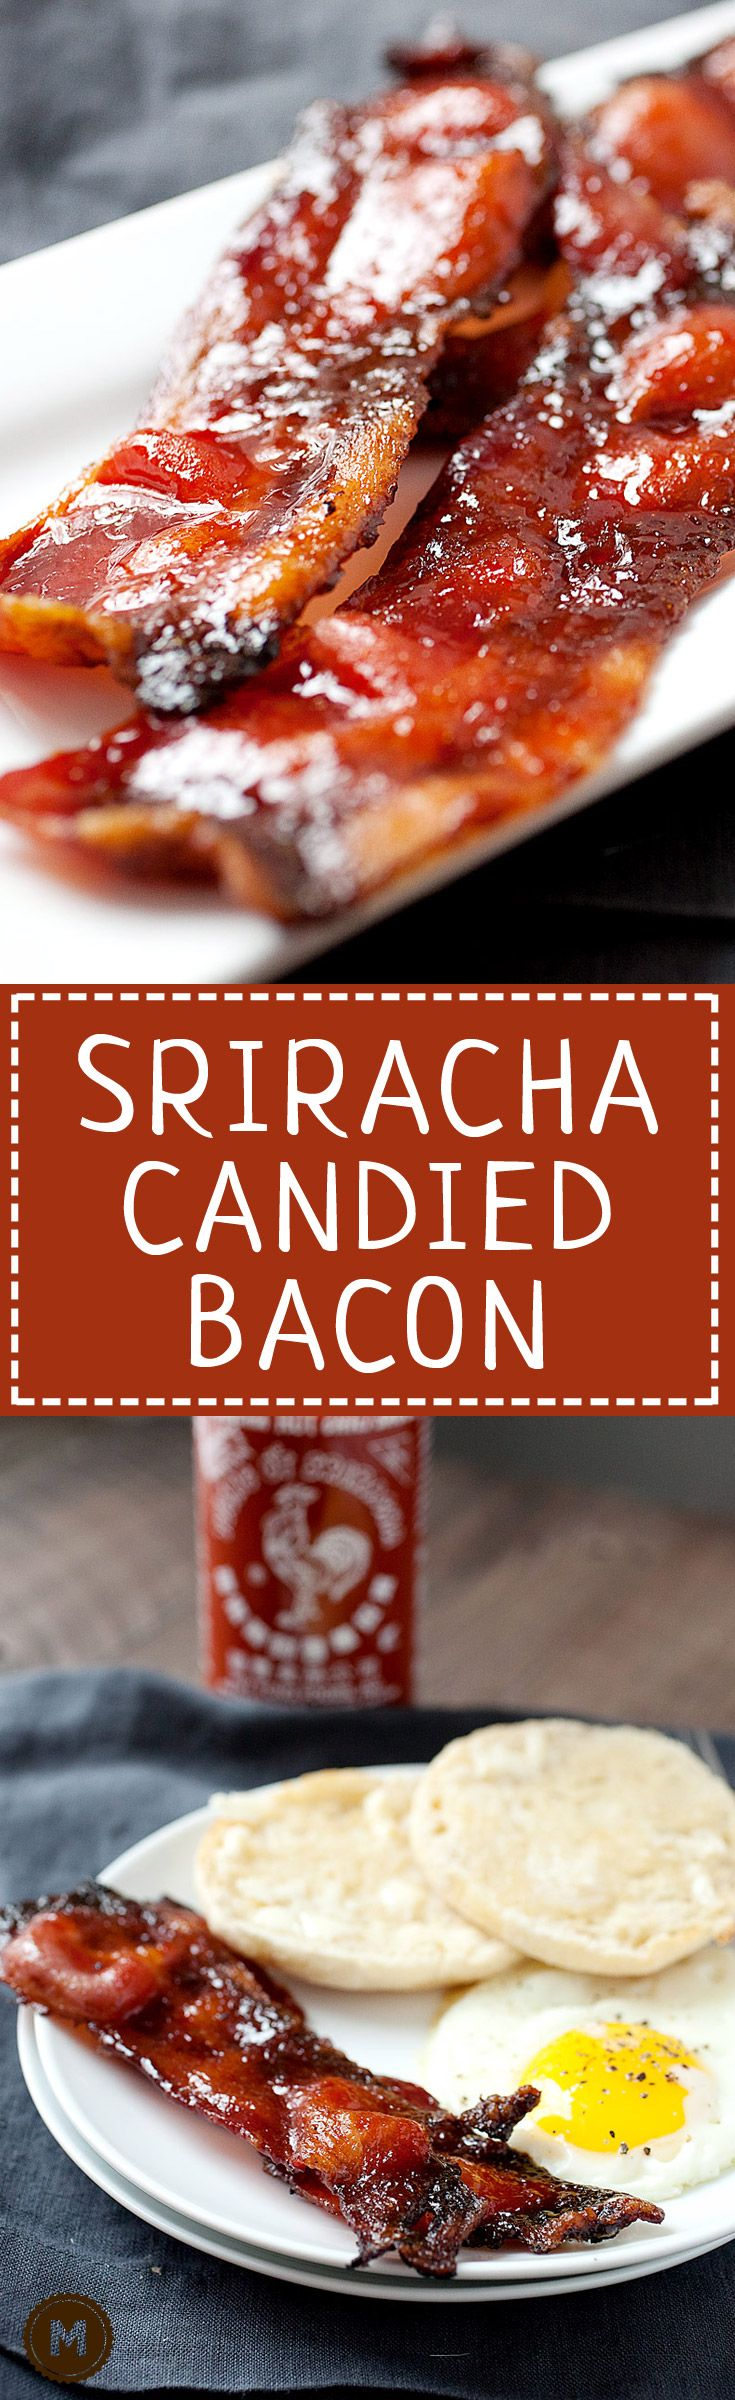 Bacon, Sweet and The o'jays on Pinterest